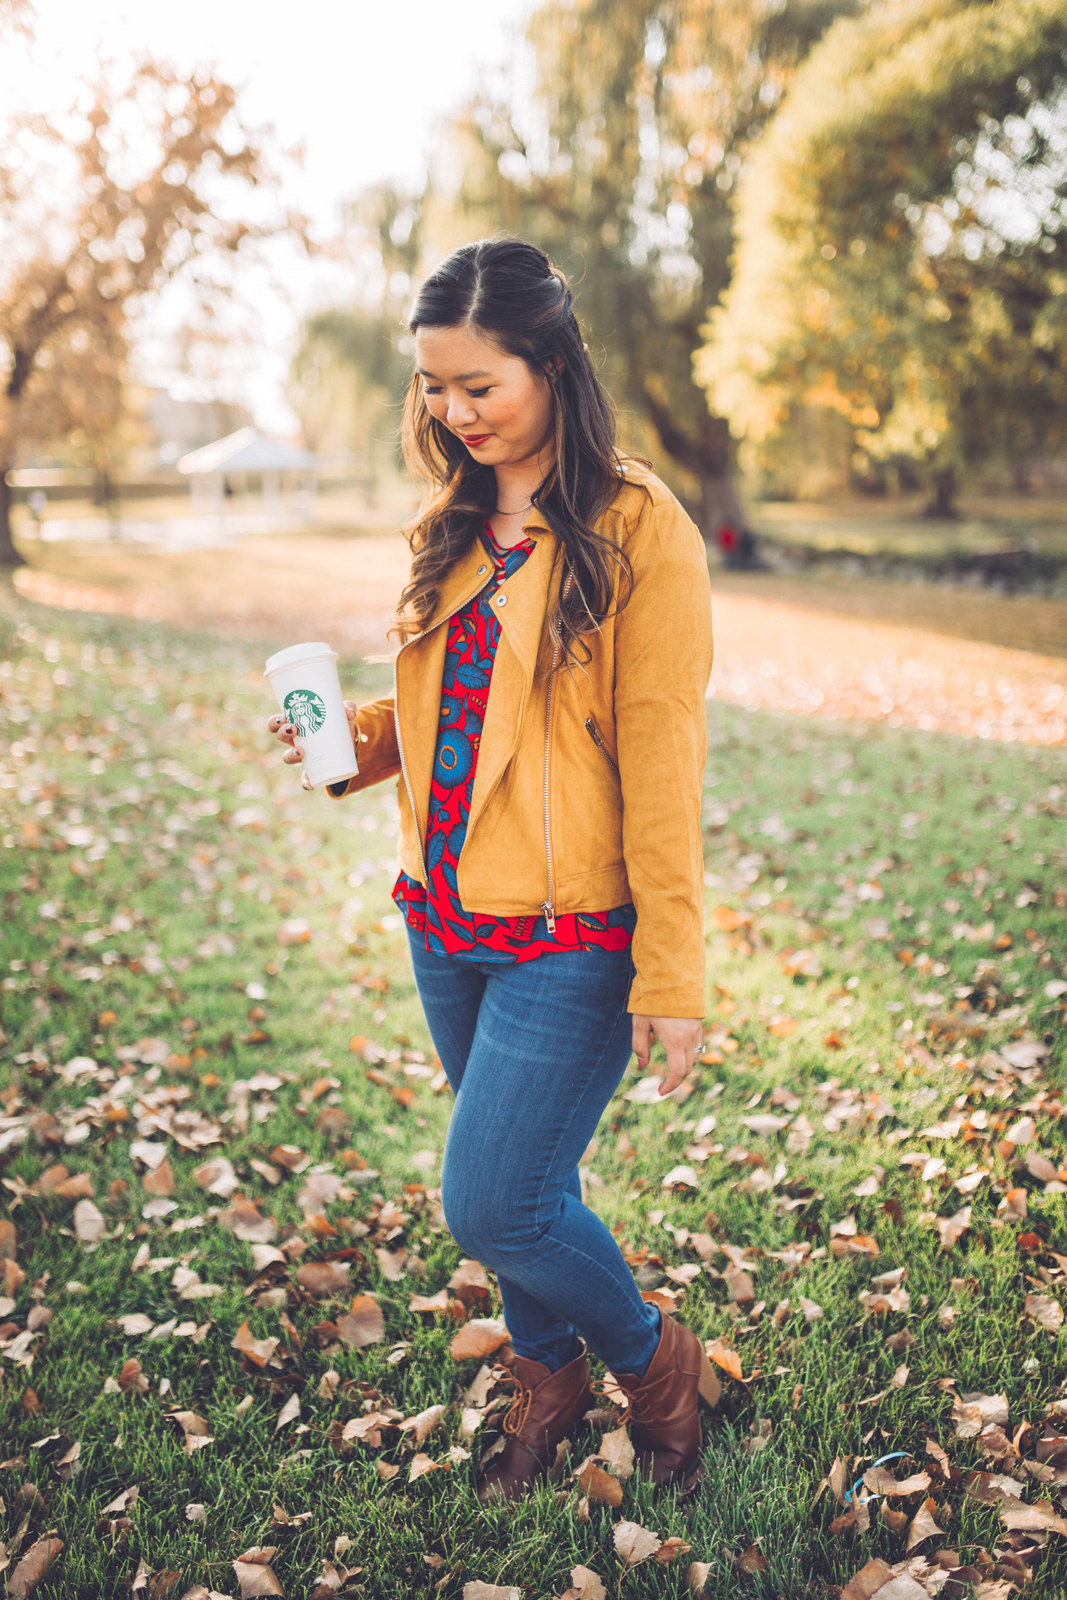 Floral and Suede Jacket